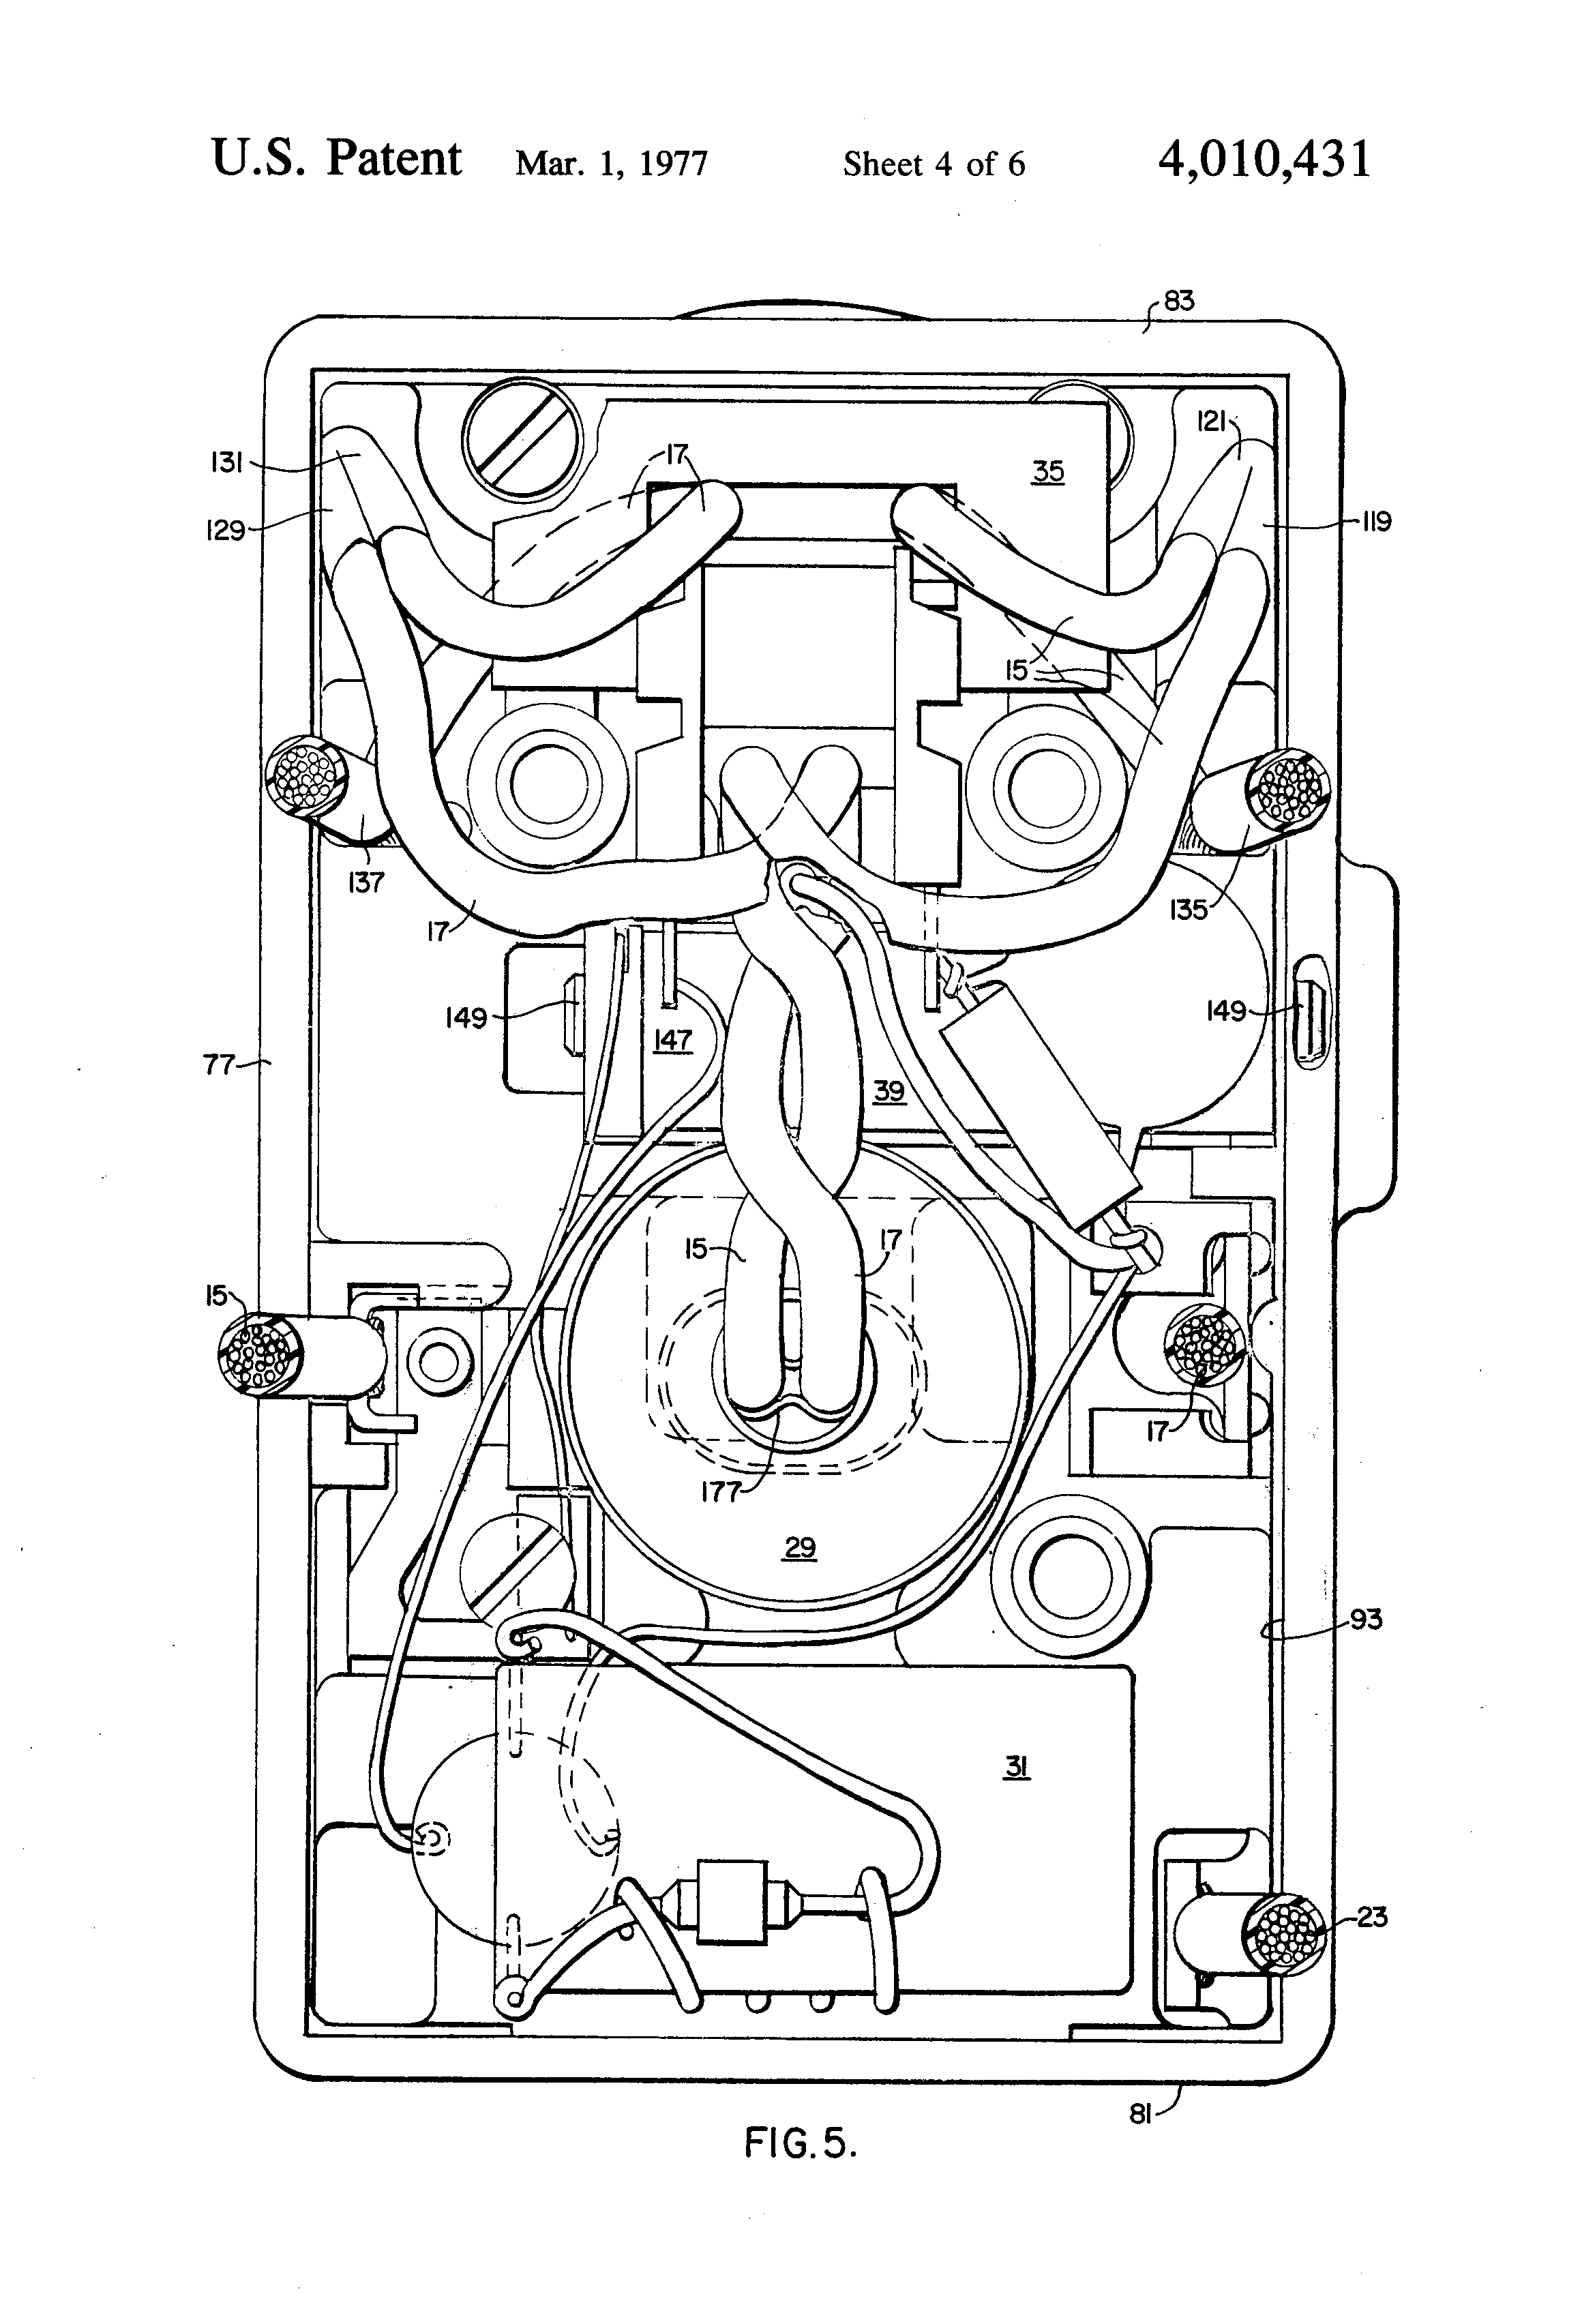 Patent Us4010431 - Switch For Electrical Wall Receptacle With Ground Fault Protection